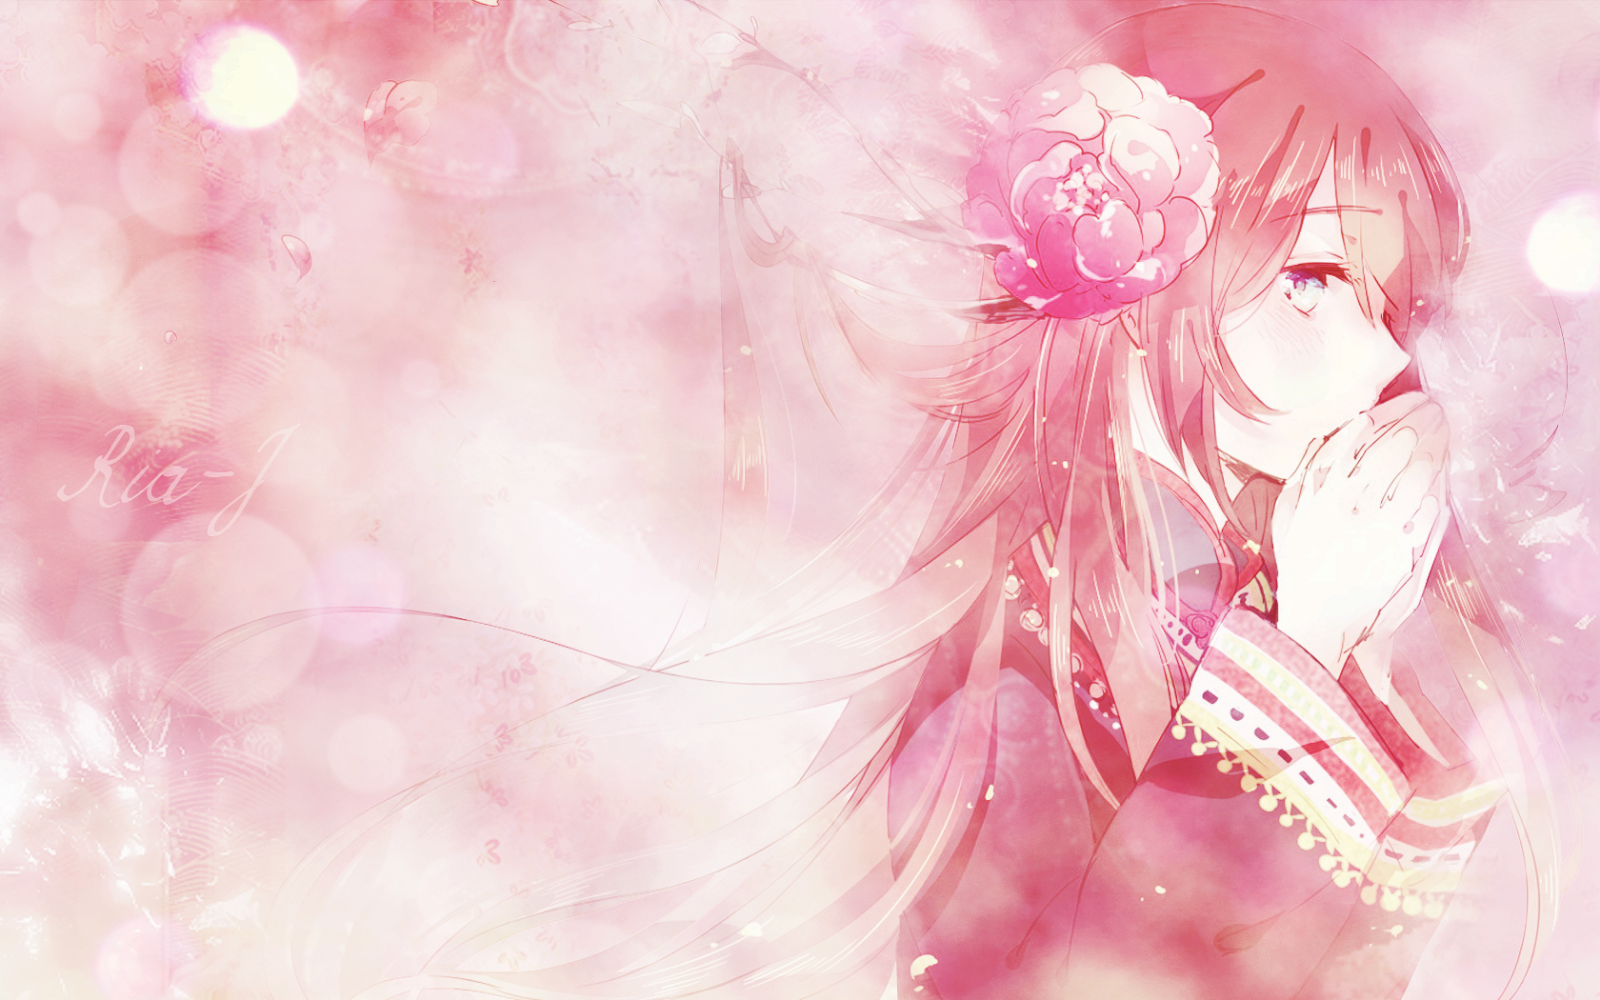 Feminine Backgrounds (PC, Mobile, Gadgets) Compatible | 1600x1000 px